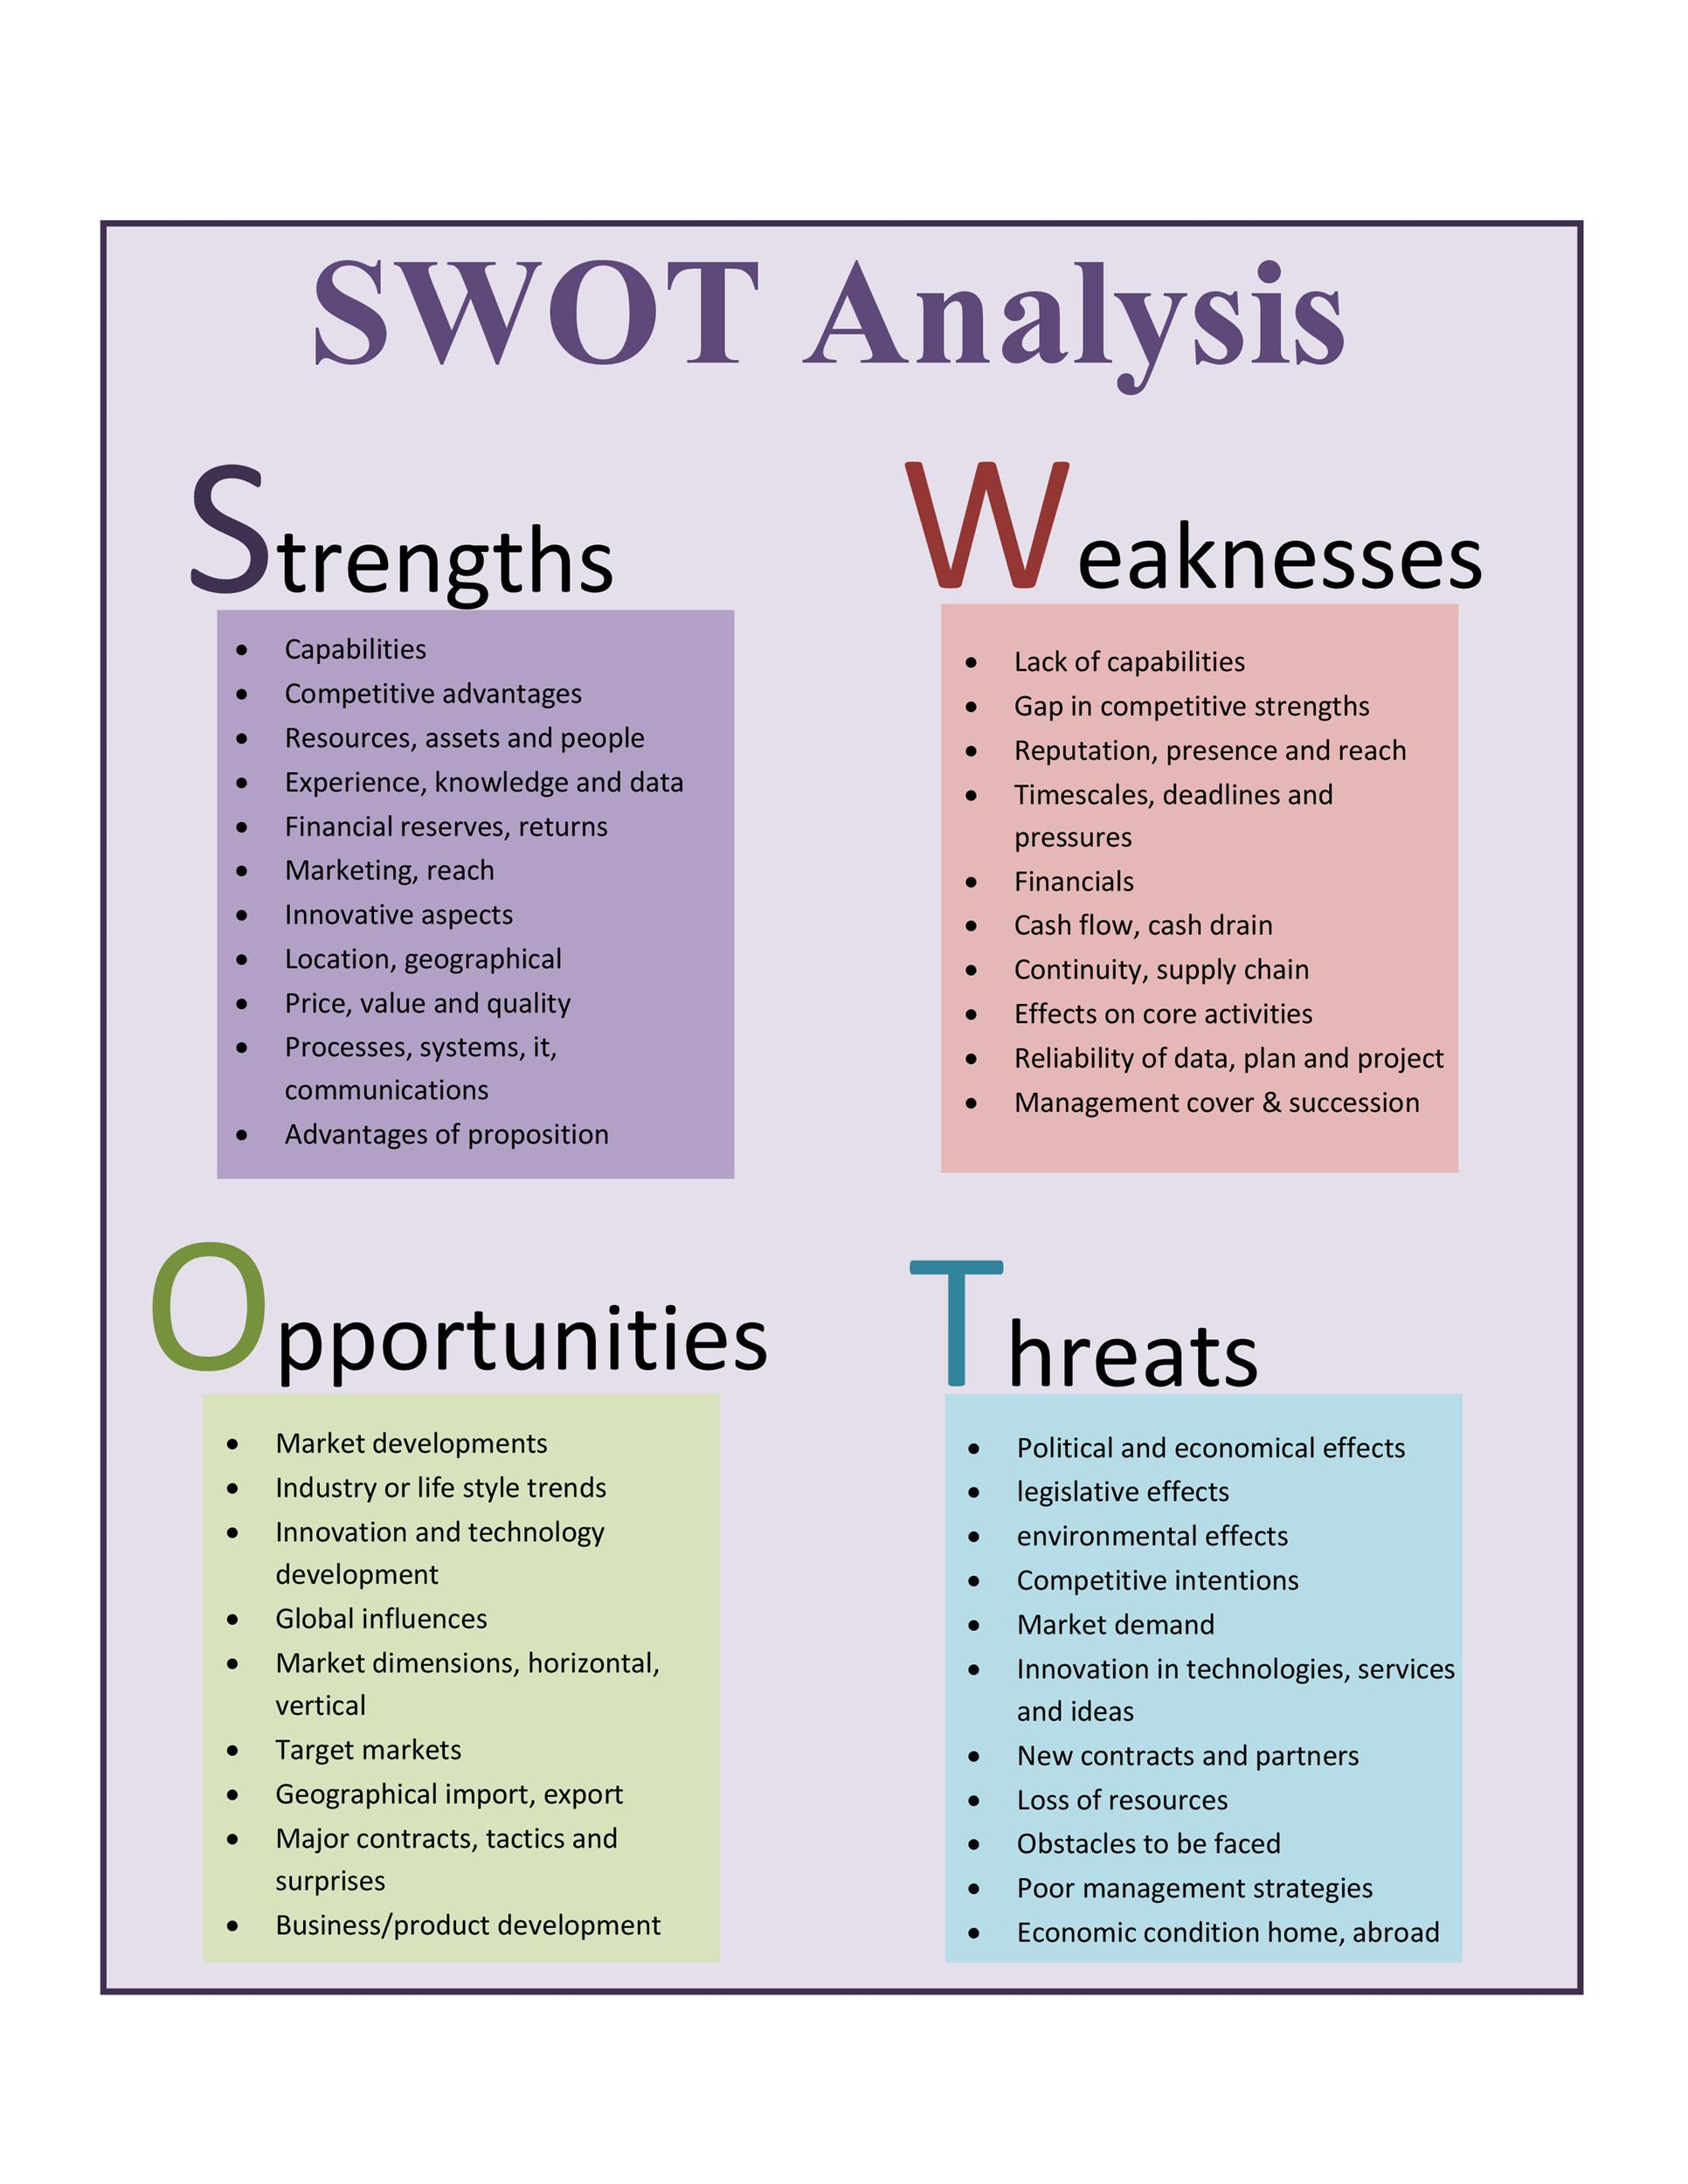 SWOT Analysis for a Day Care Center